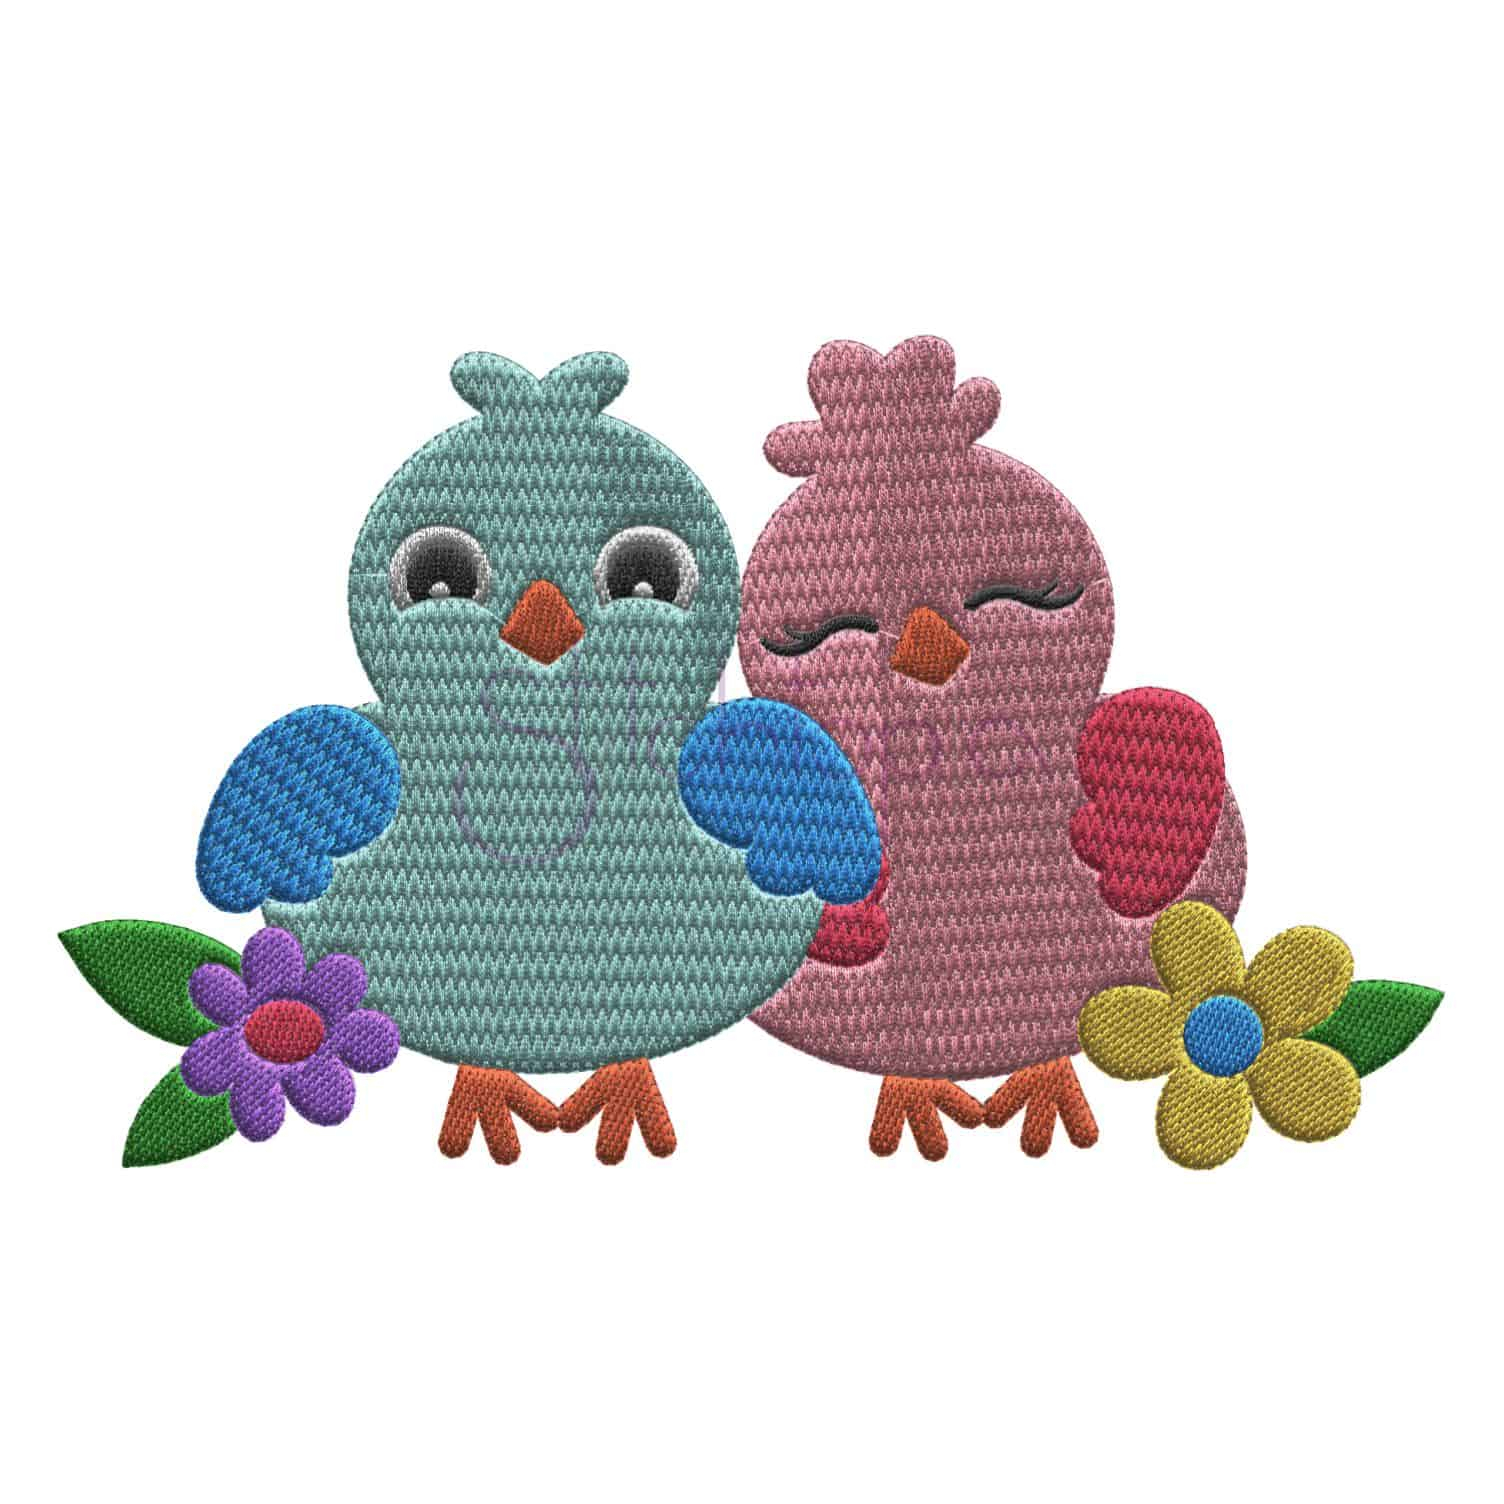 Bird Embroidery Pattern Bird Embroidery Design Lovebirds